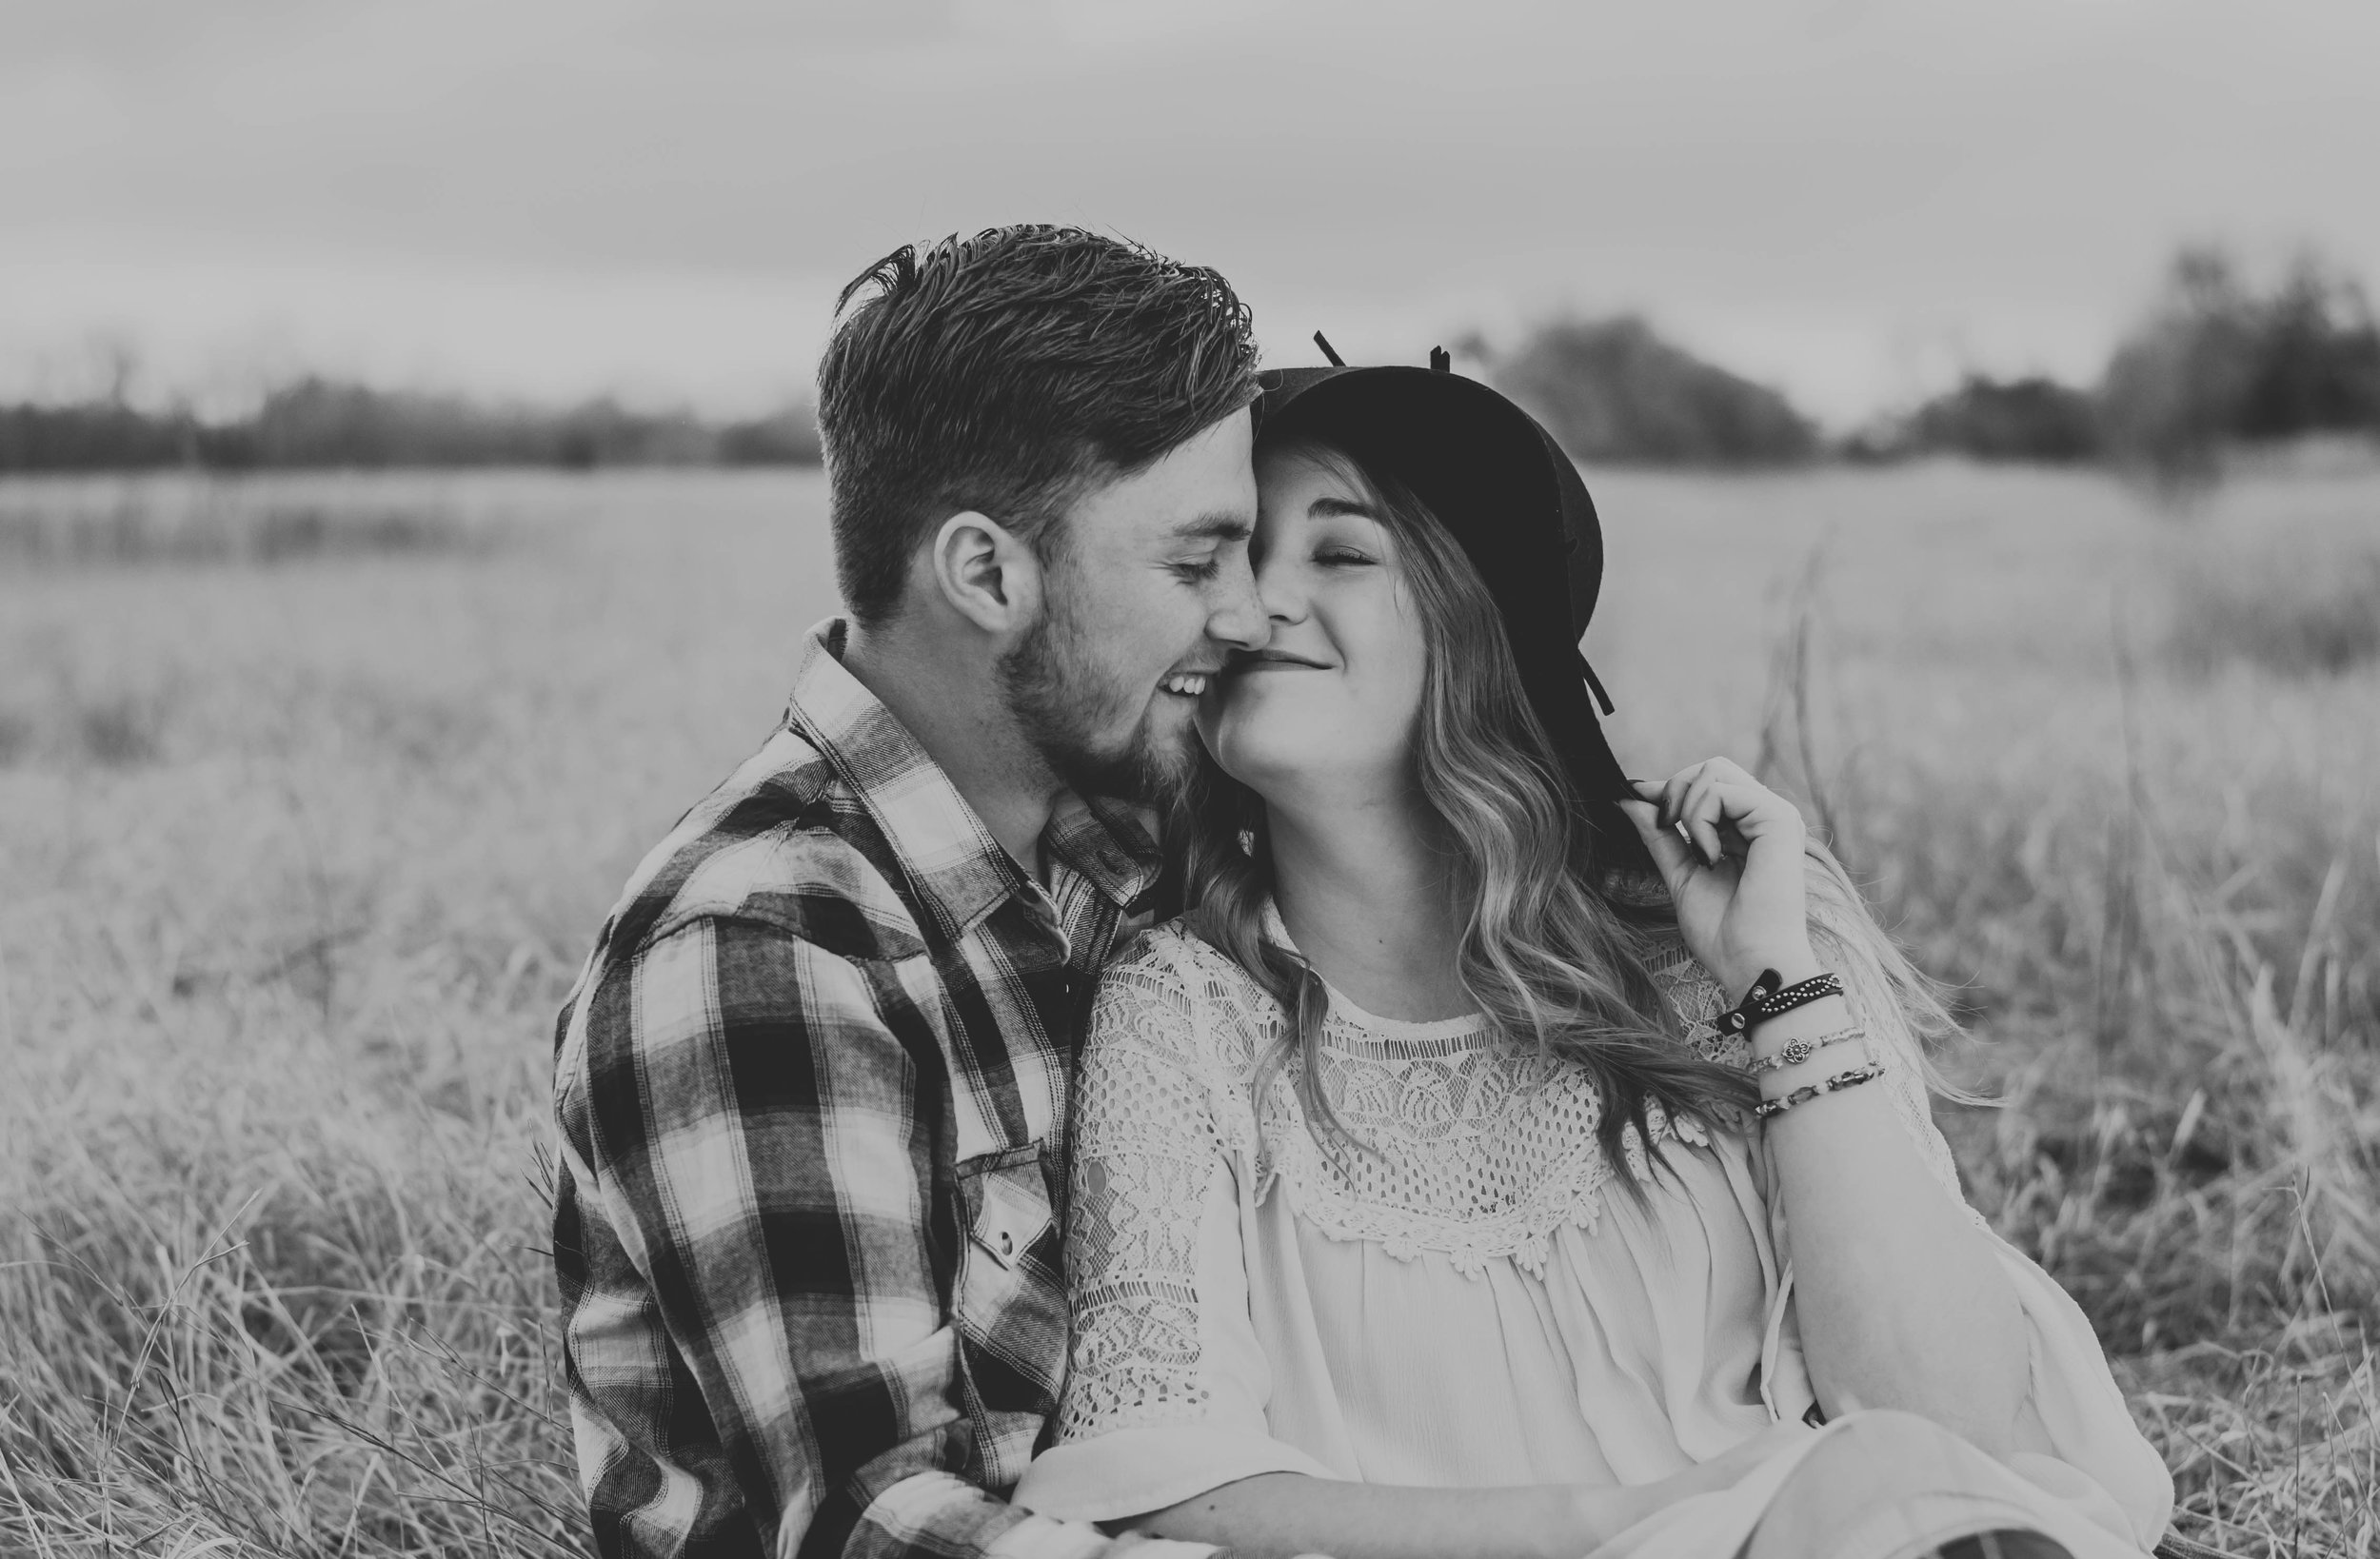 Miss. Miller's Photography | Colorado couples photographer | Colorado elopement photographer | Colorado wedding photographer | sitting down poses for couples | sitting down engagement photos | candid engagement photos | fun engagement photo ideas